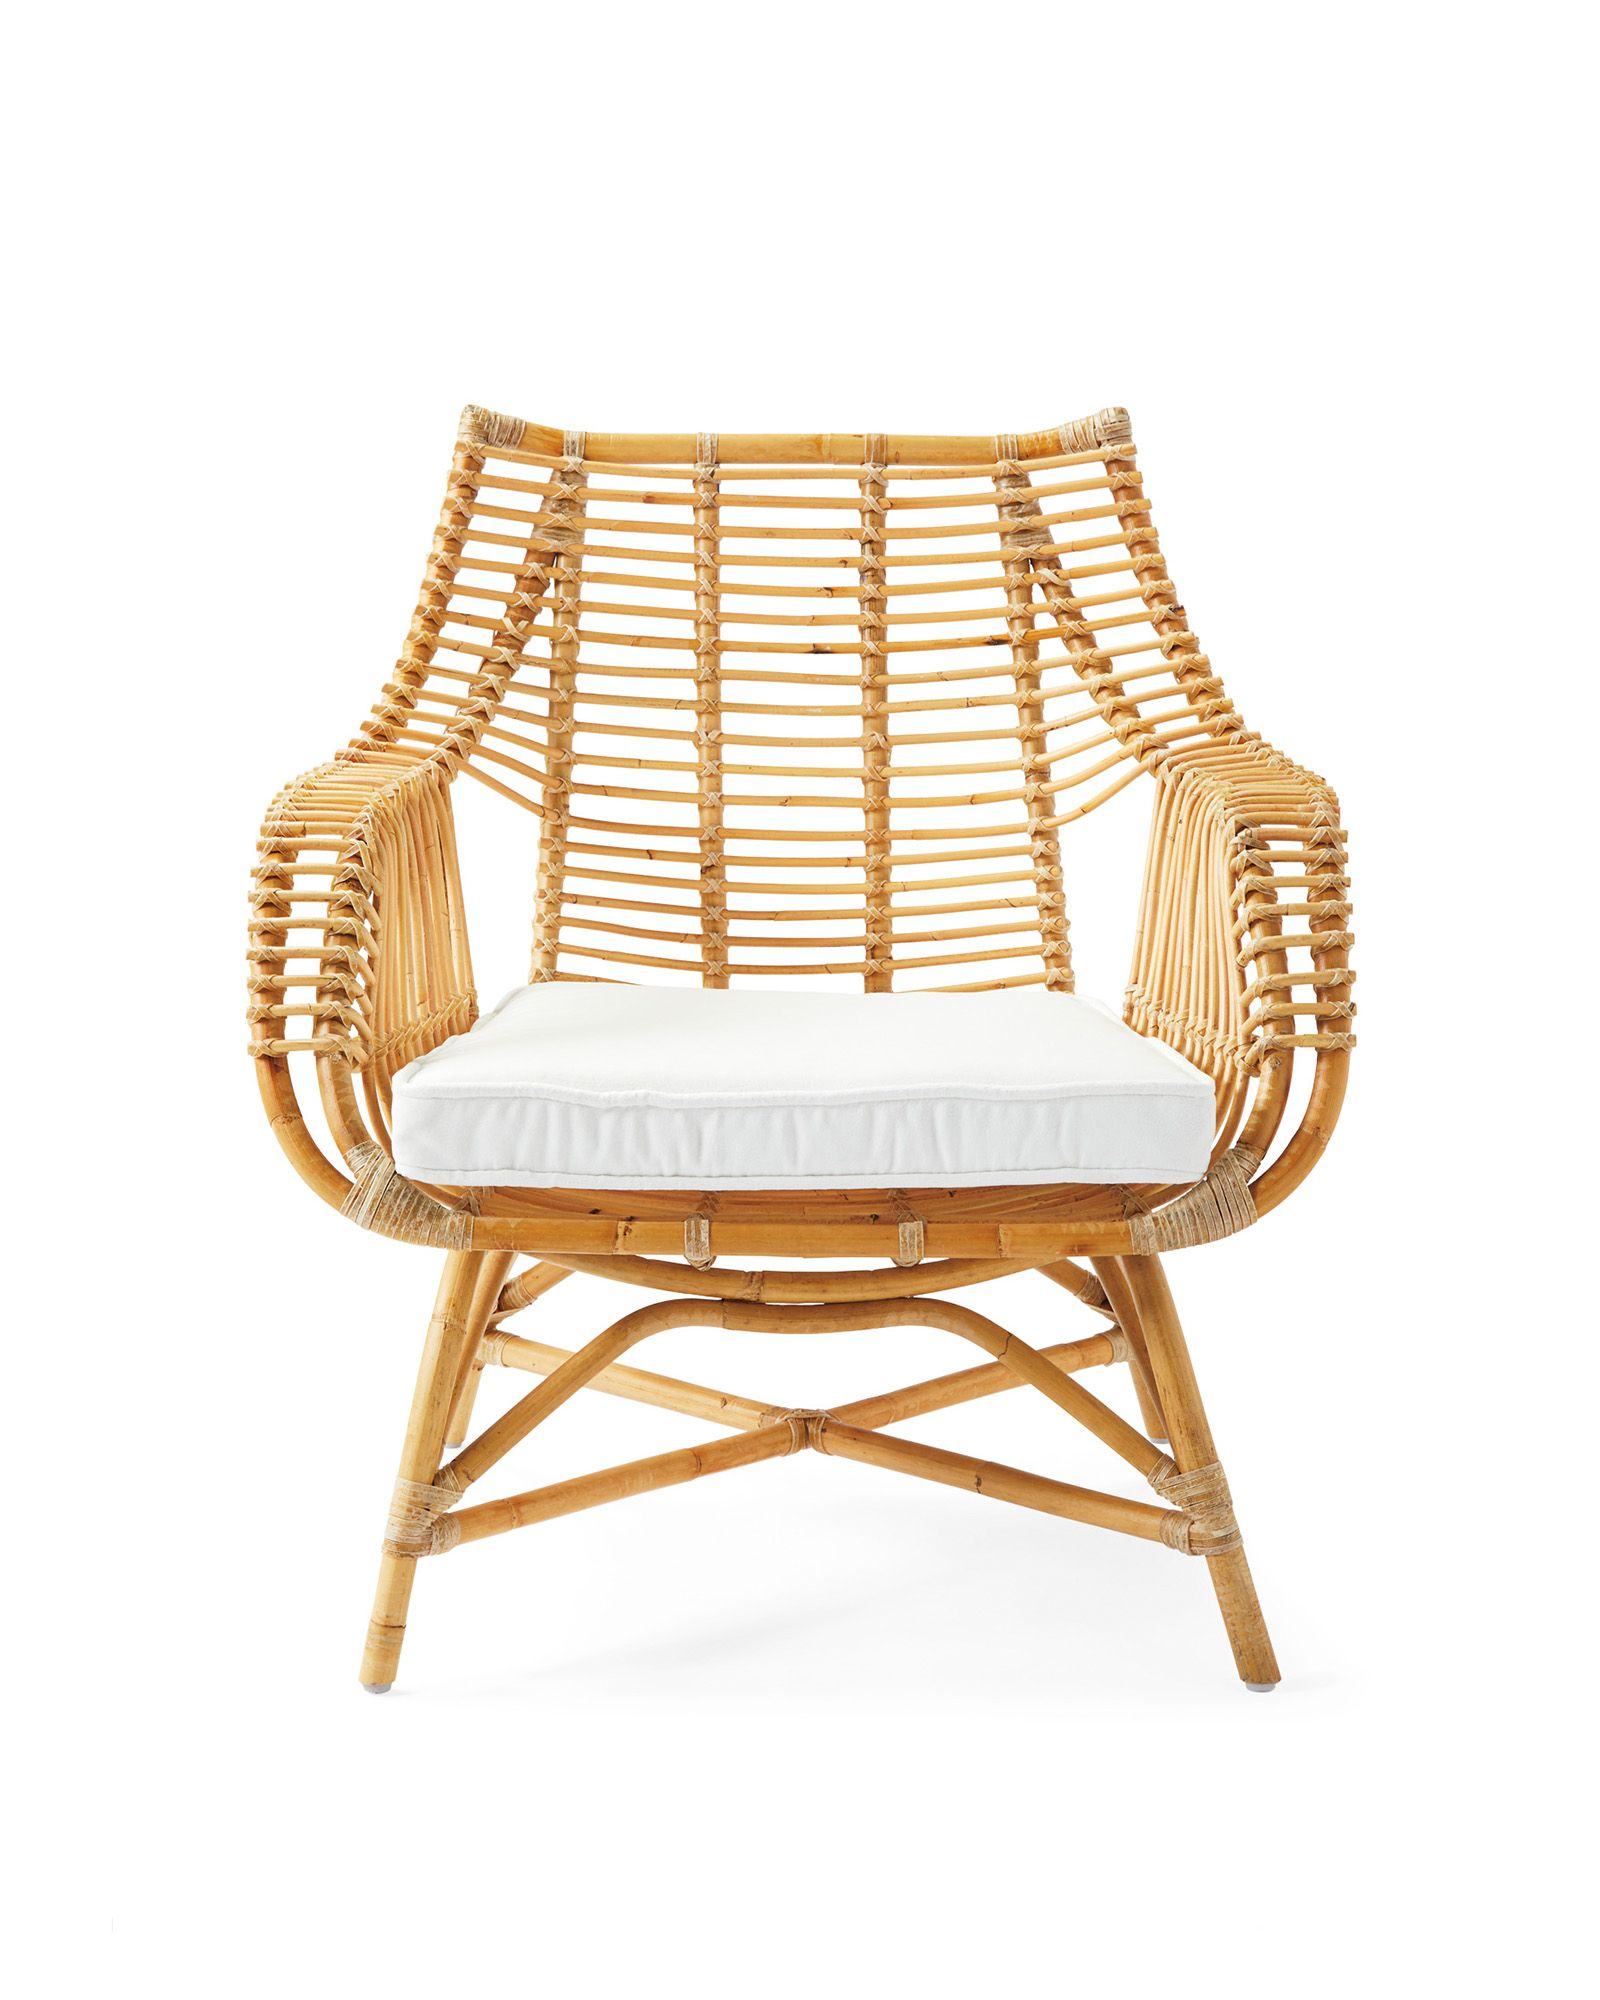 Venice Rattan Chair Cushion Made To Order In 2020 Rattan Chair Cushions Chair Cushions Chair